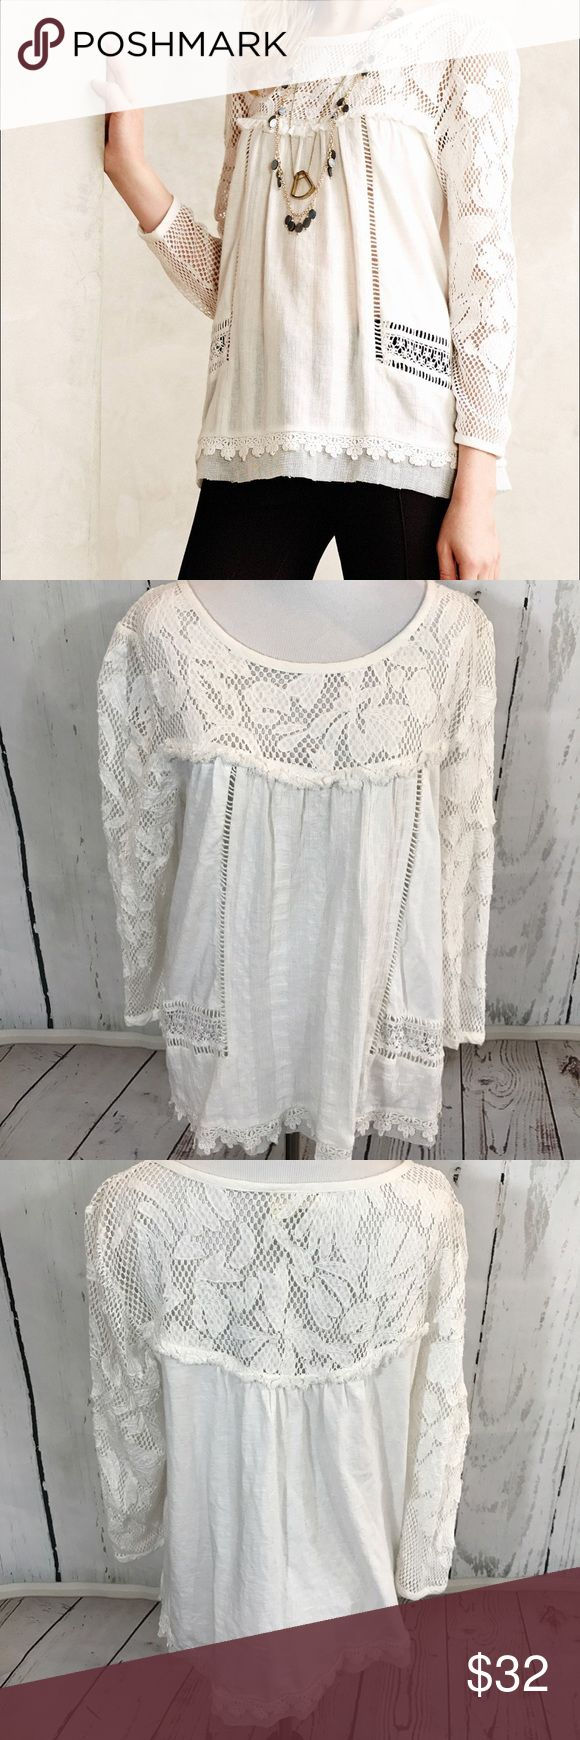 🎀 Anthropologie Meadow Rue Lace Shirt 🎀 Perfectly breezy and endlessly flattering, the peasant top is one of our perennial go-to pieces. We're pairing this lacy one from Meadow Rue with everything from distressed denim to maxi skirts. Anthropologie Skirts